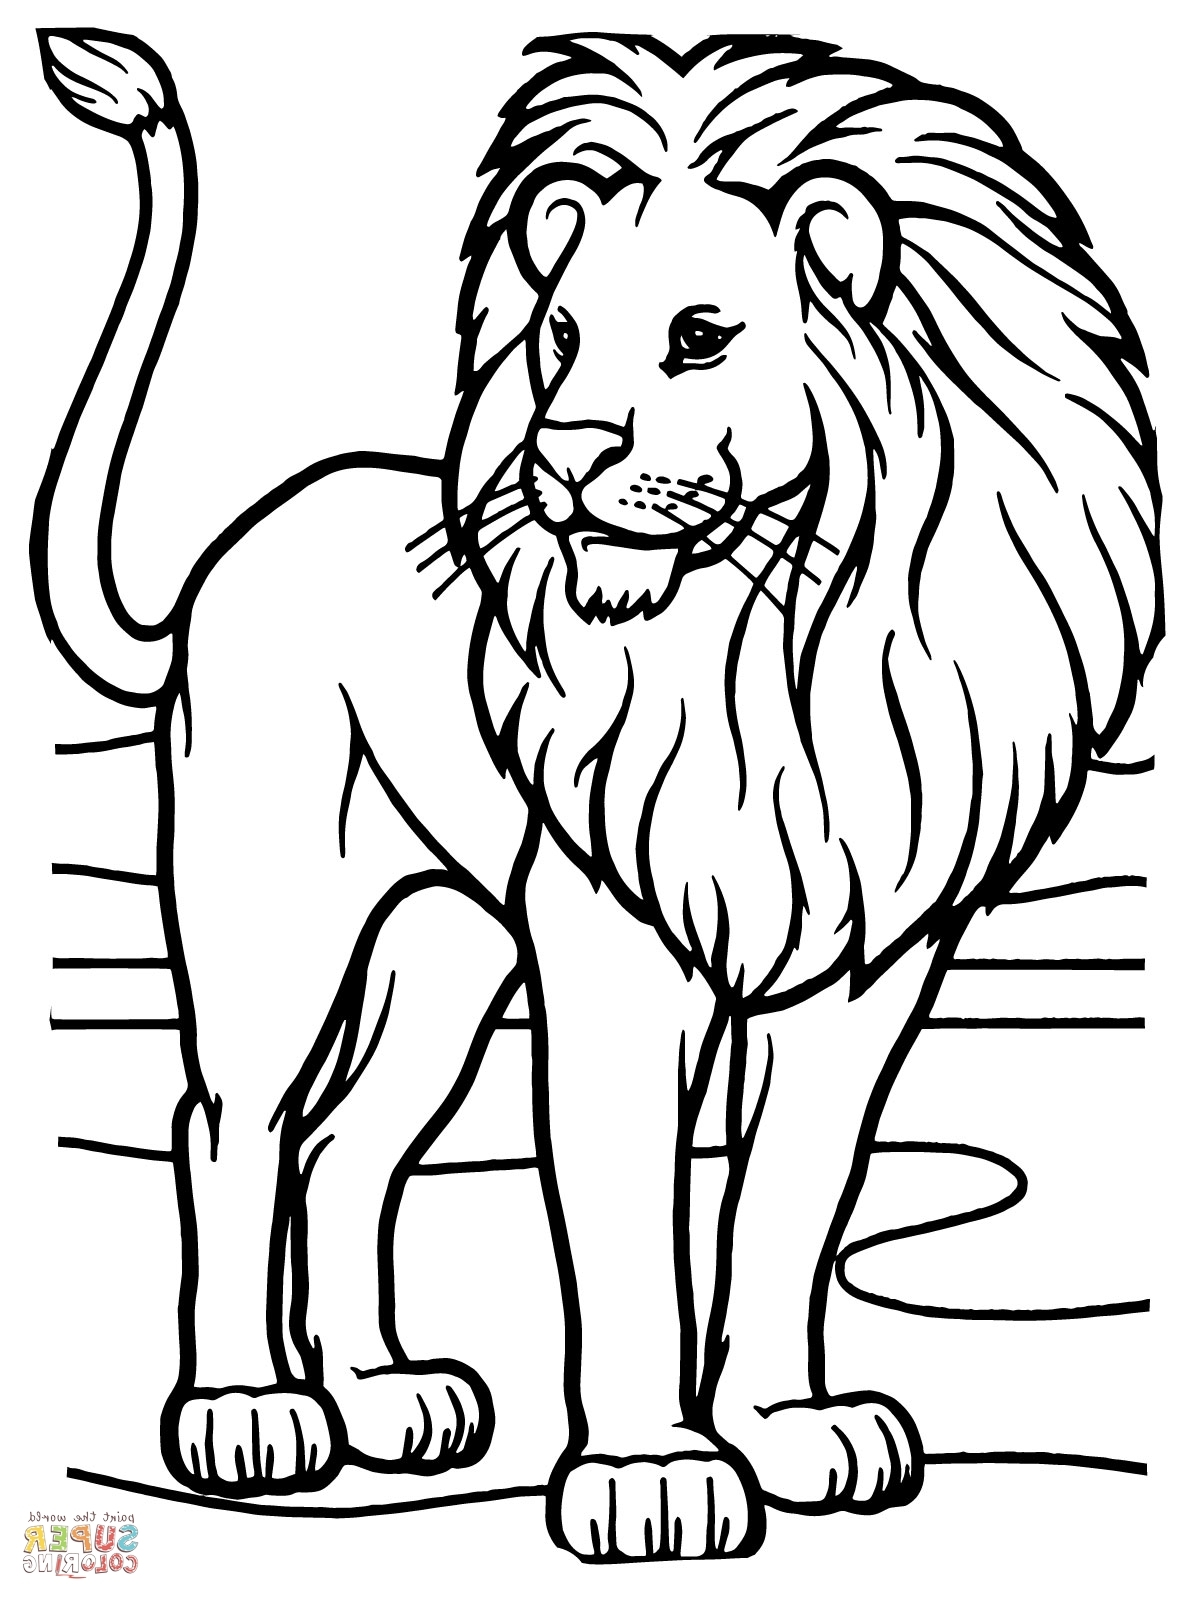 Rasta Coloring Pages At Getcolorings